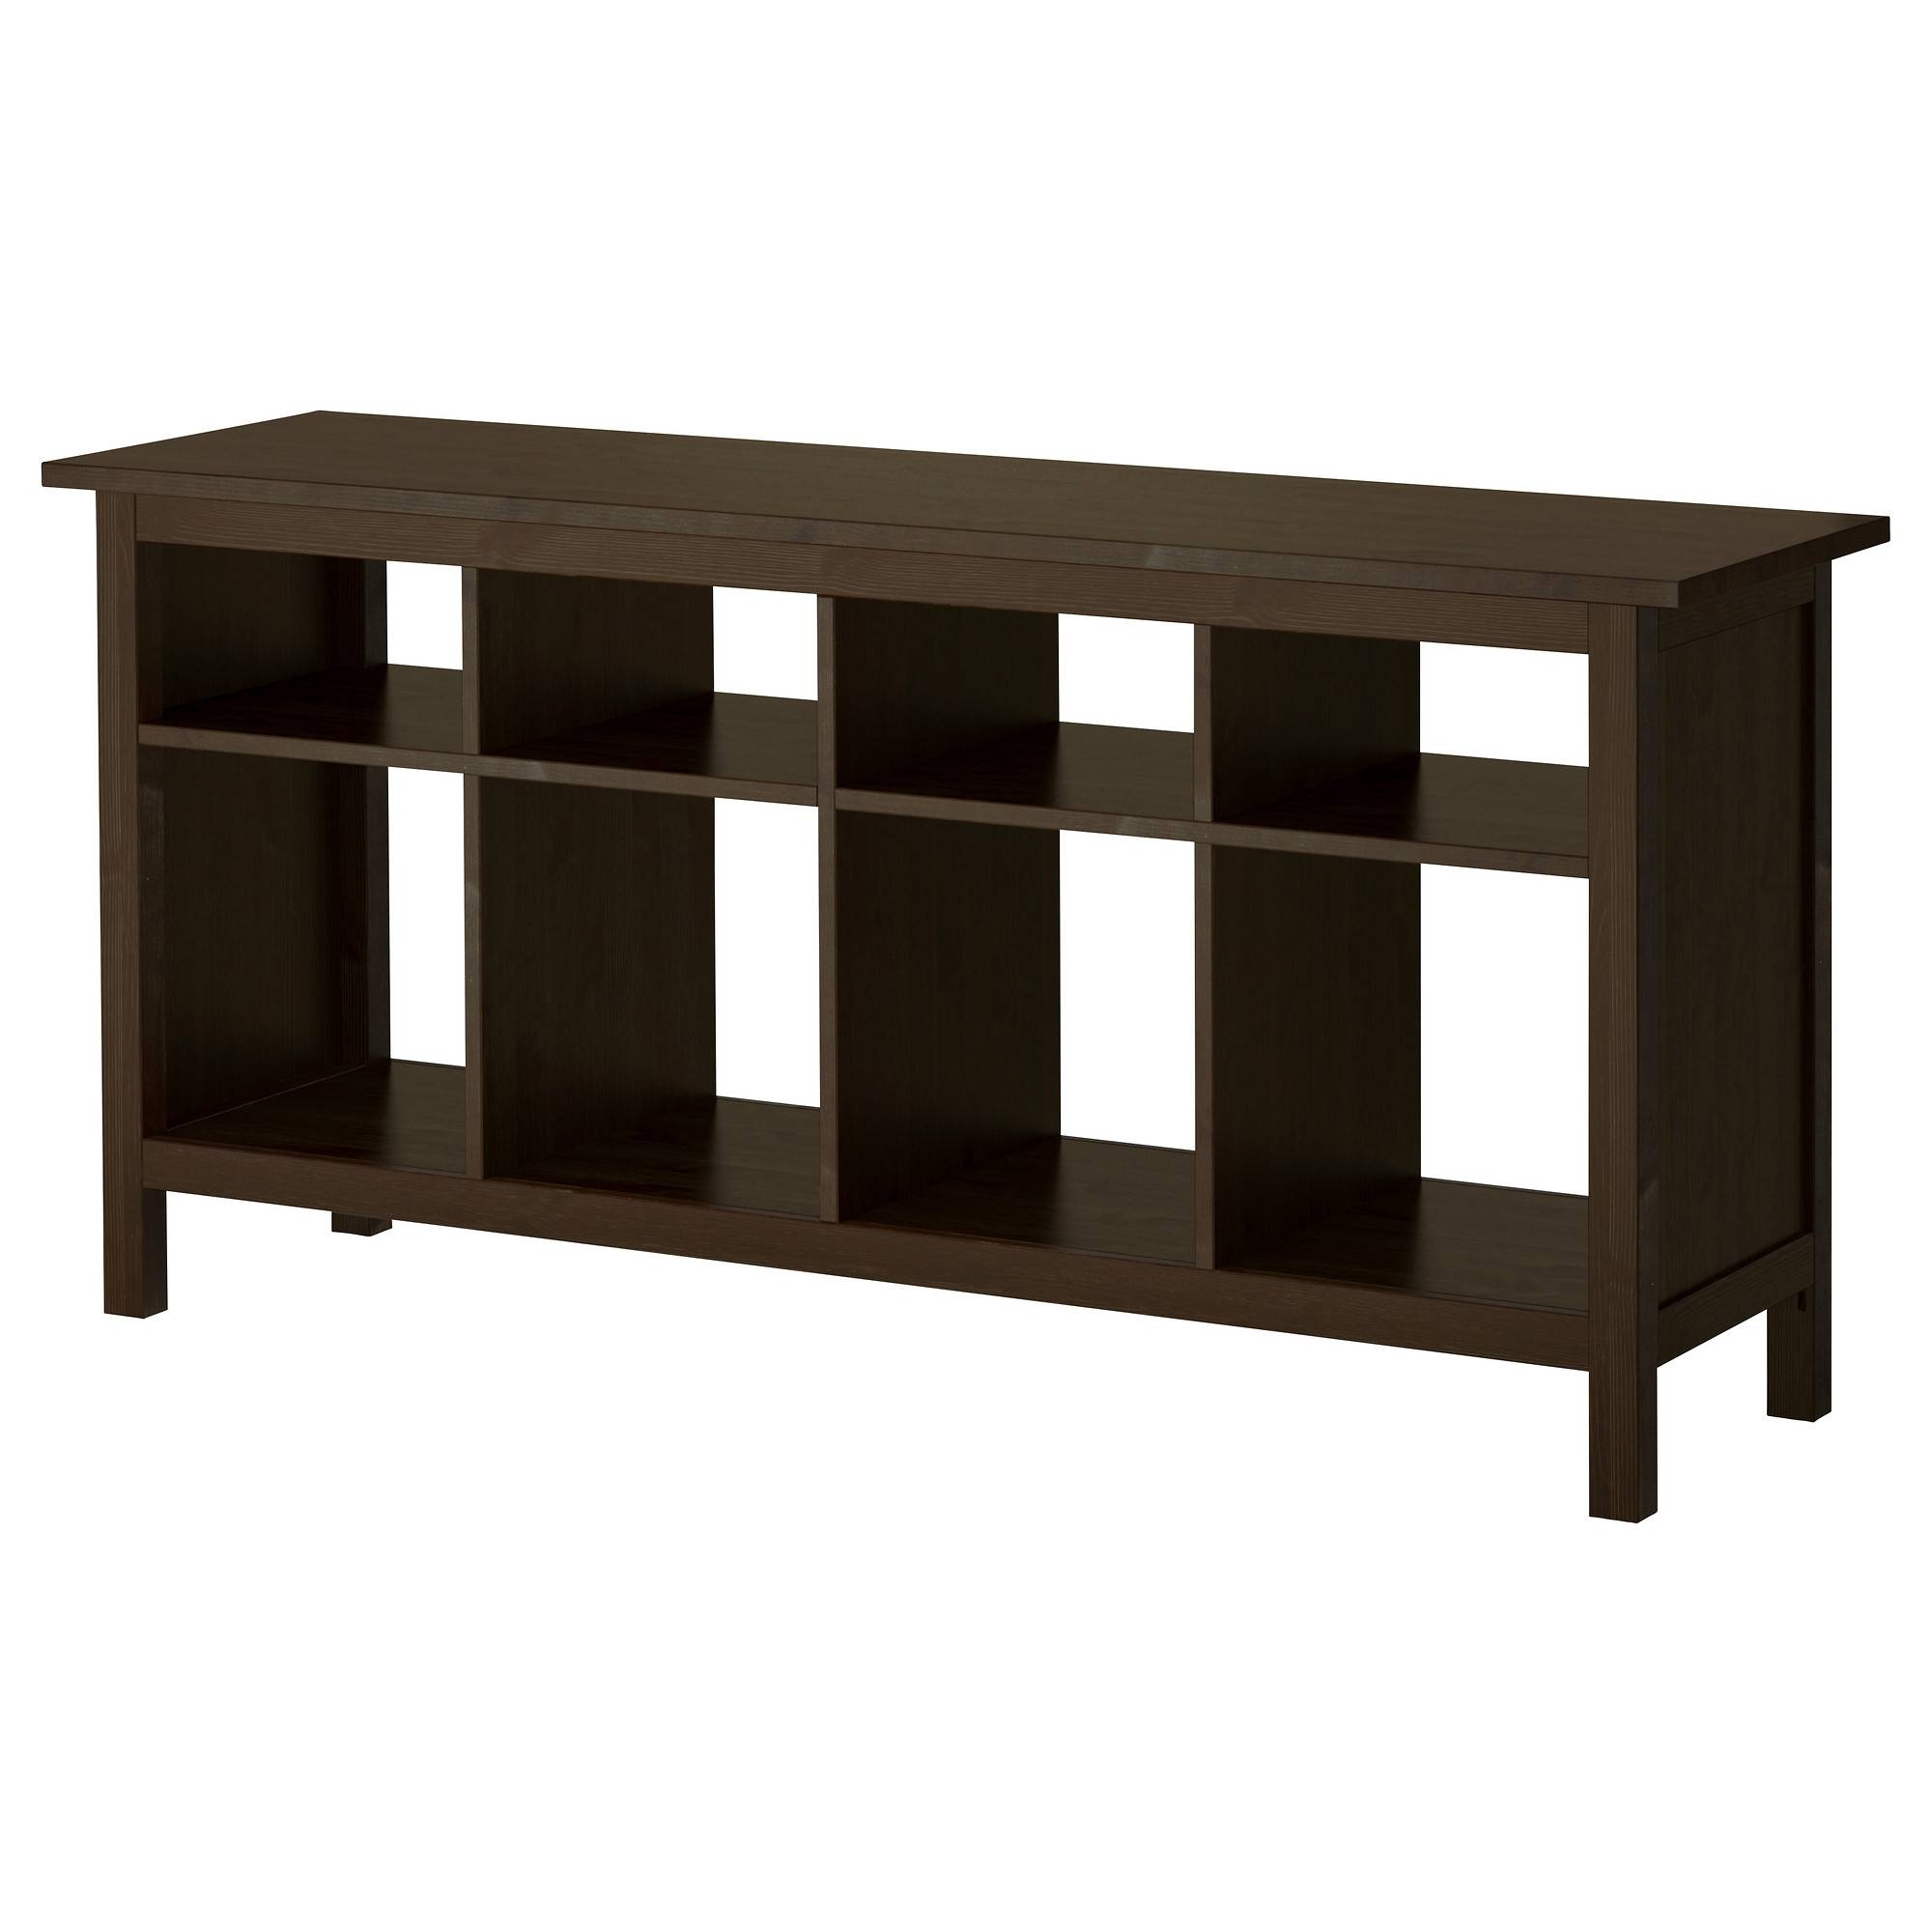 15 collection of ikea sideboards and buffets. Black Bedroom Furniture Sets. Home Design Ideas